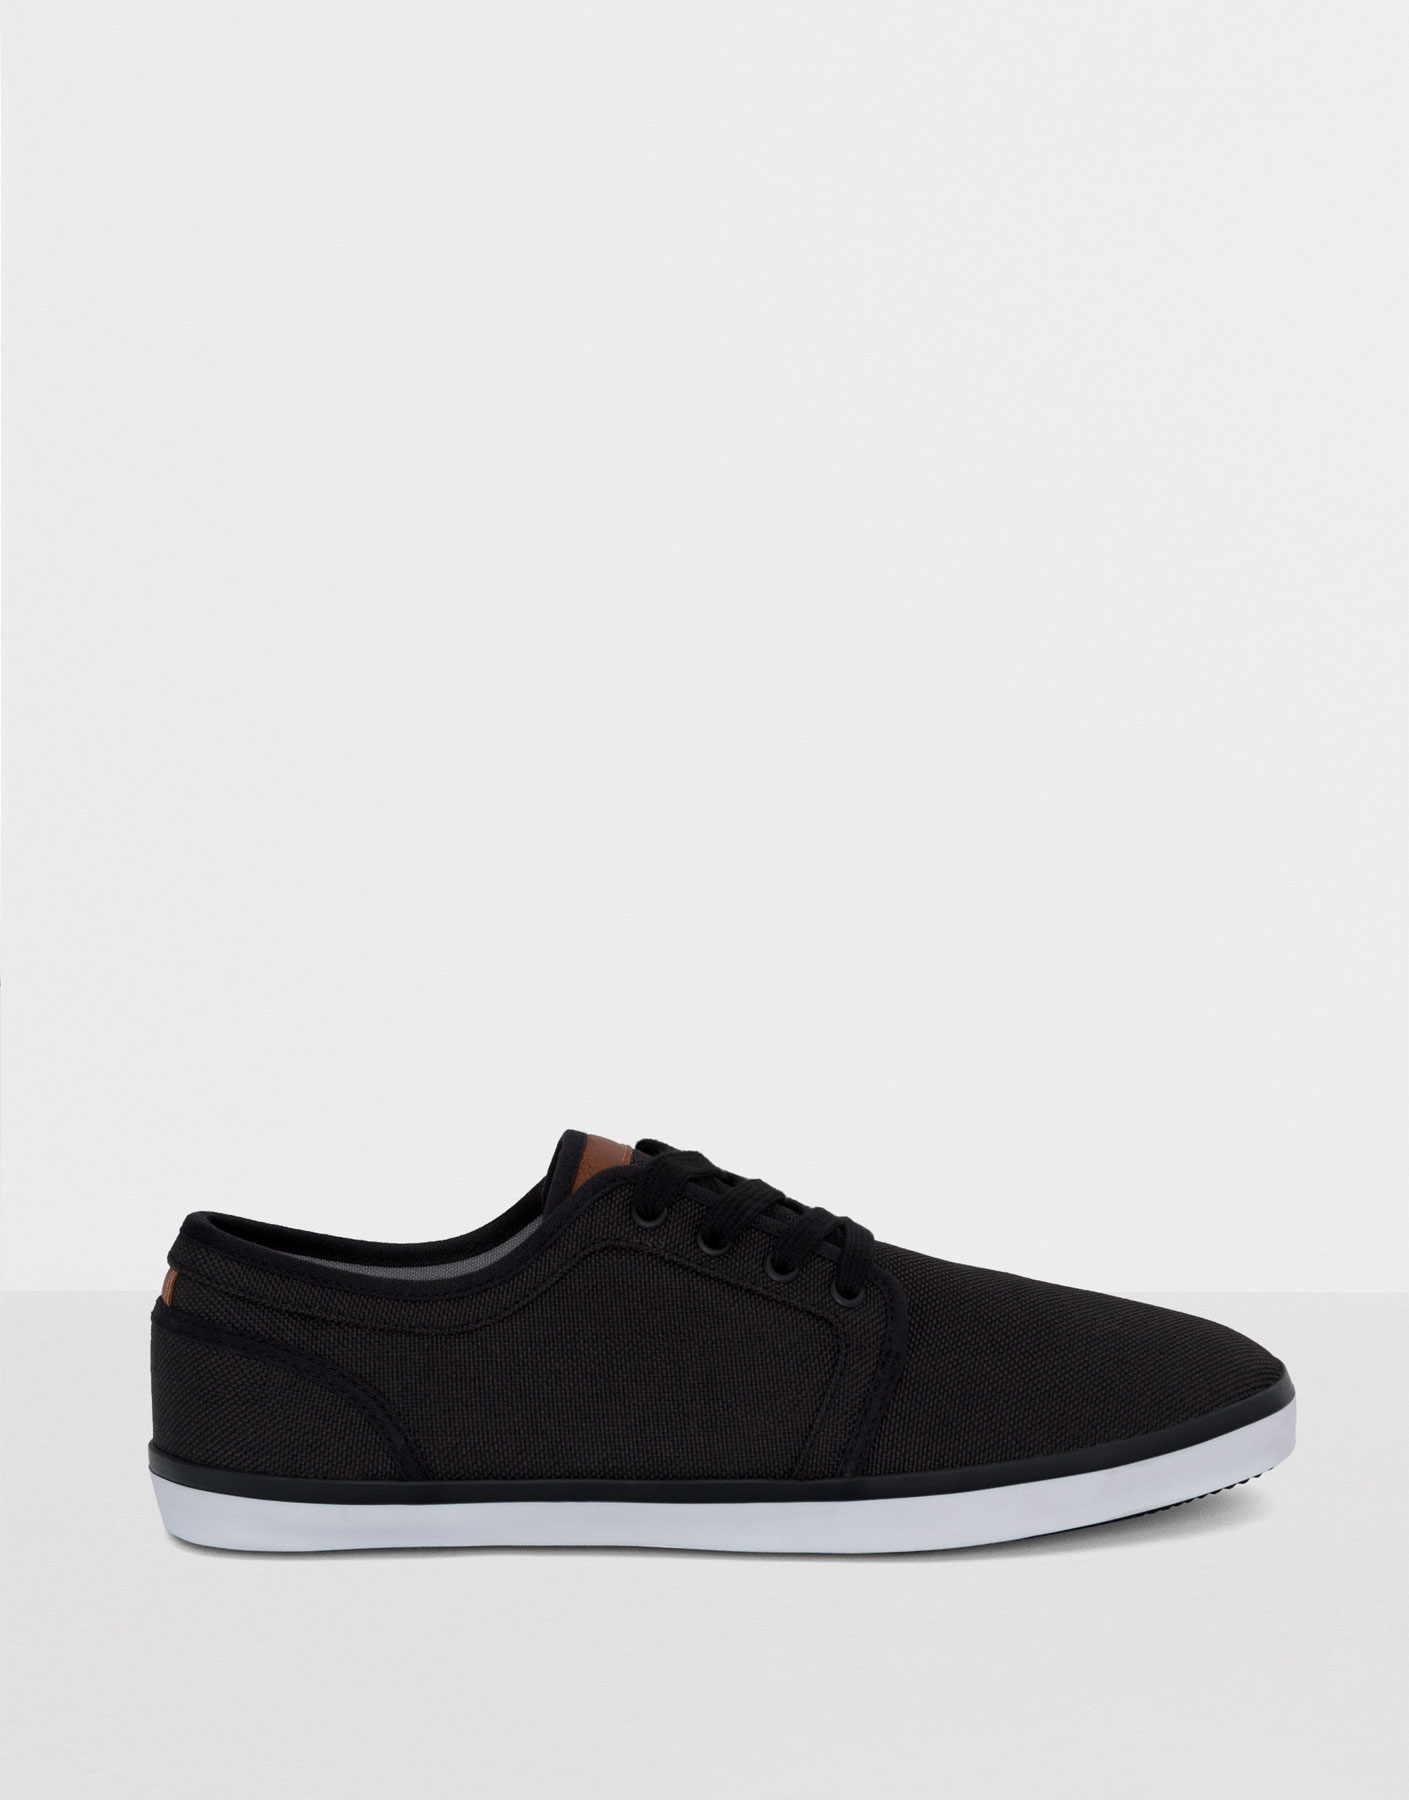 Black fabric plimsolls